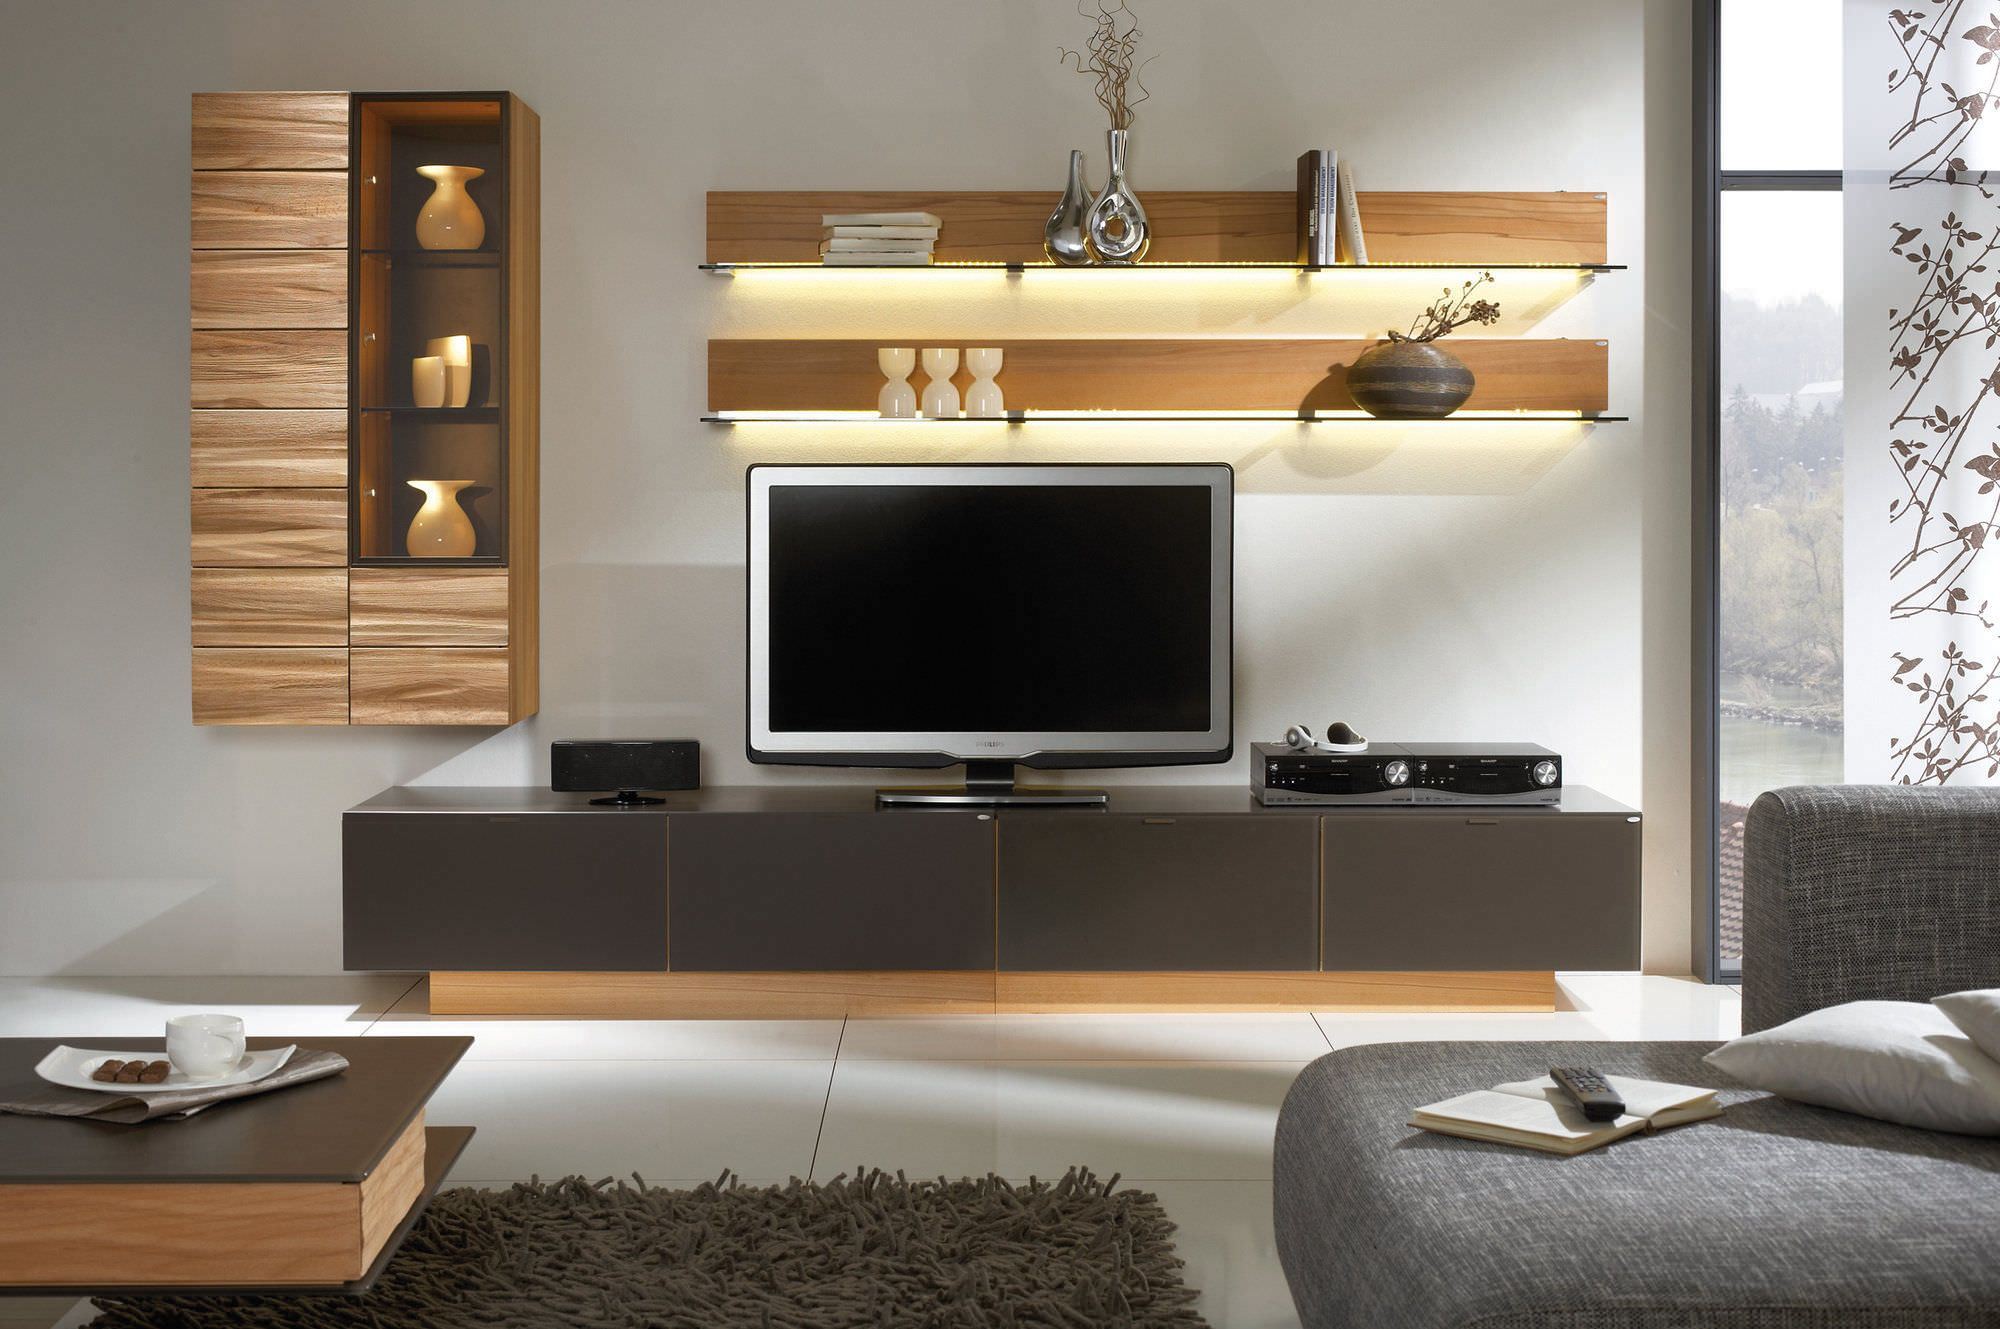 Awesome white brown wood glass cool design contemporary tv for Meuble bar stube giustina